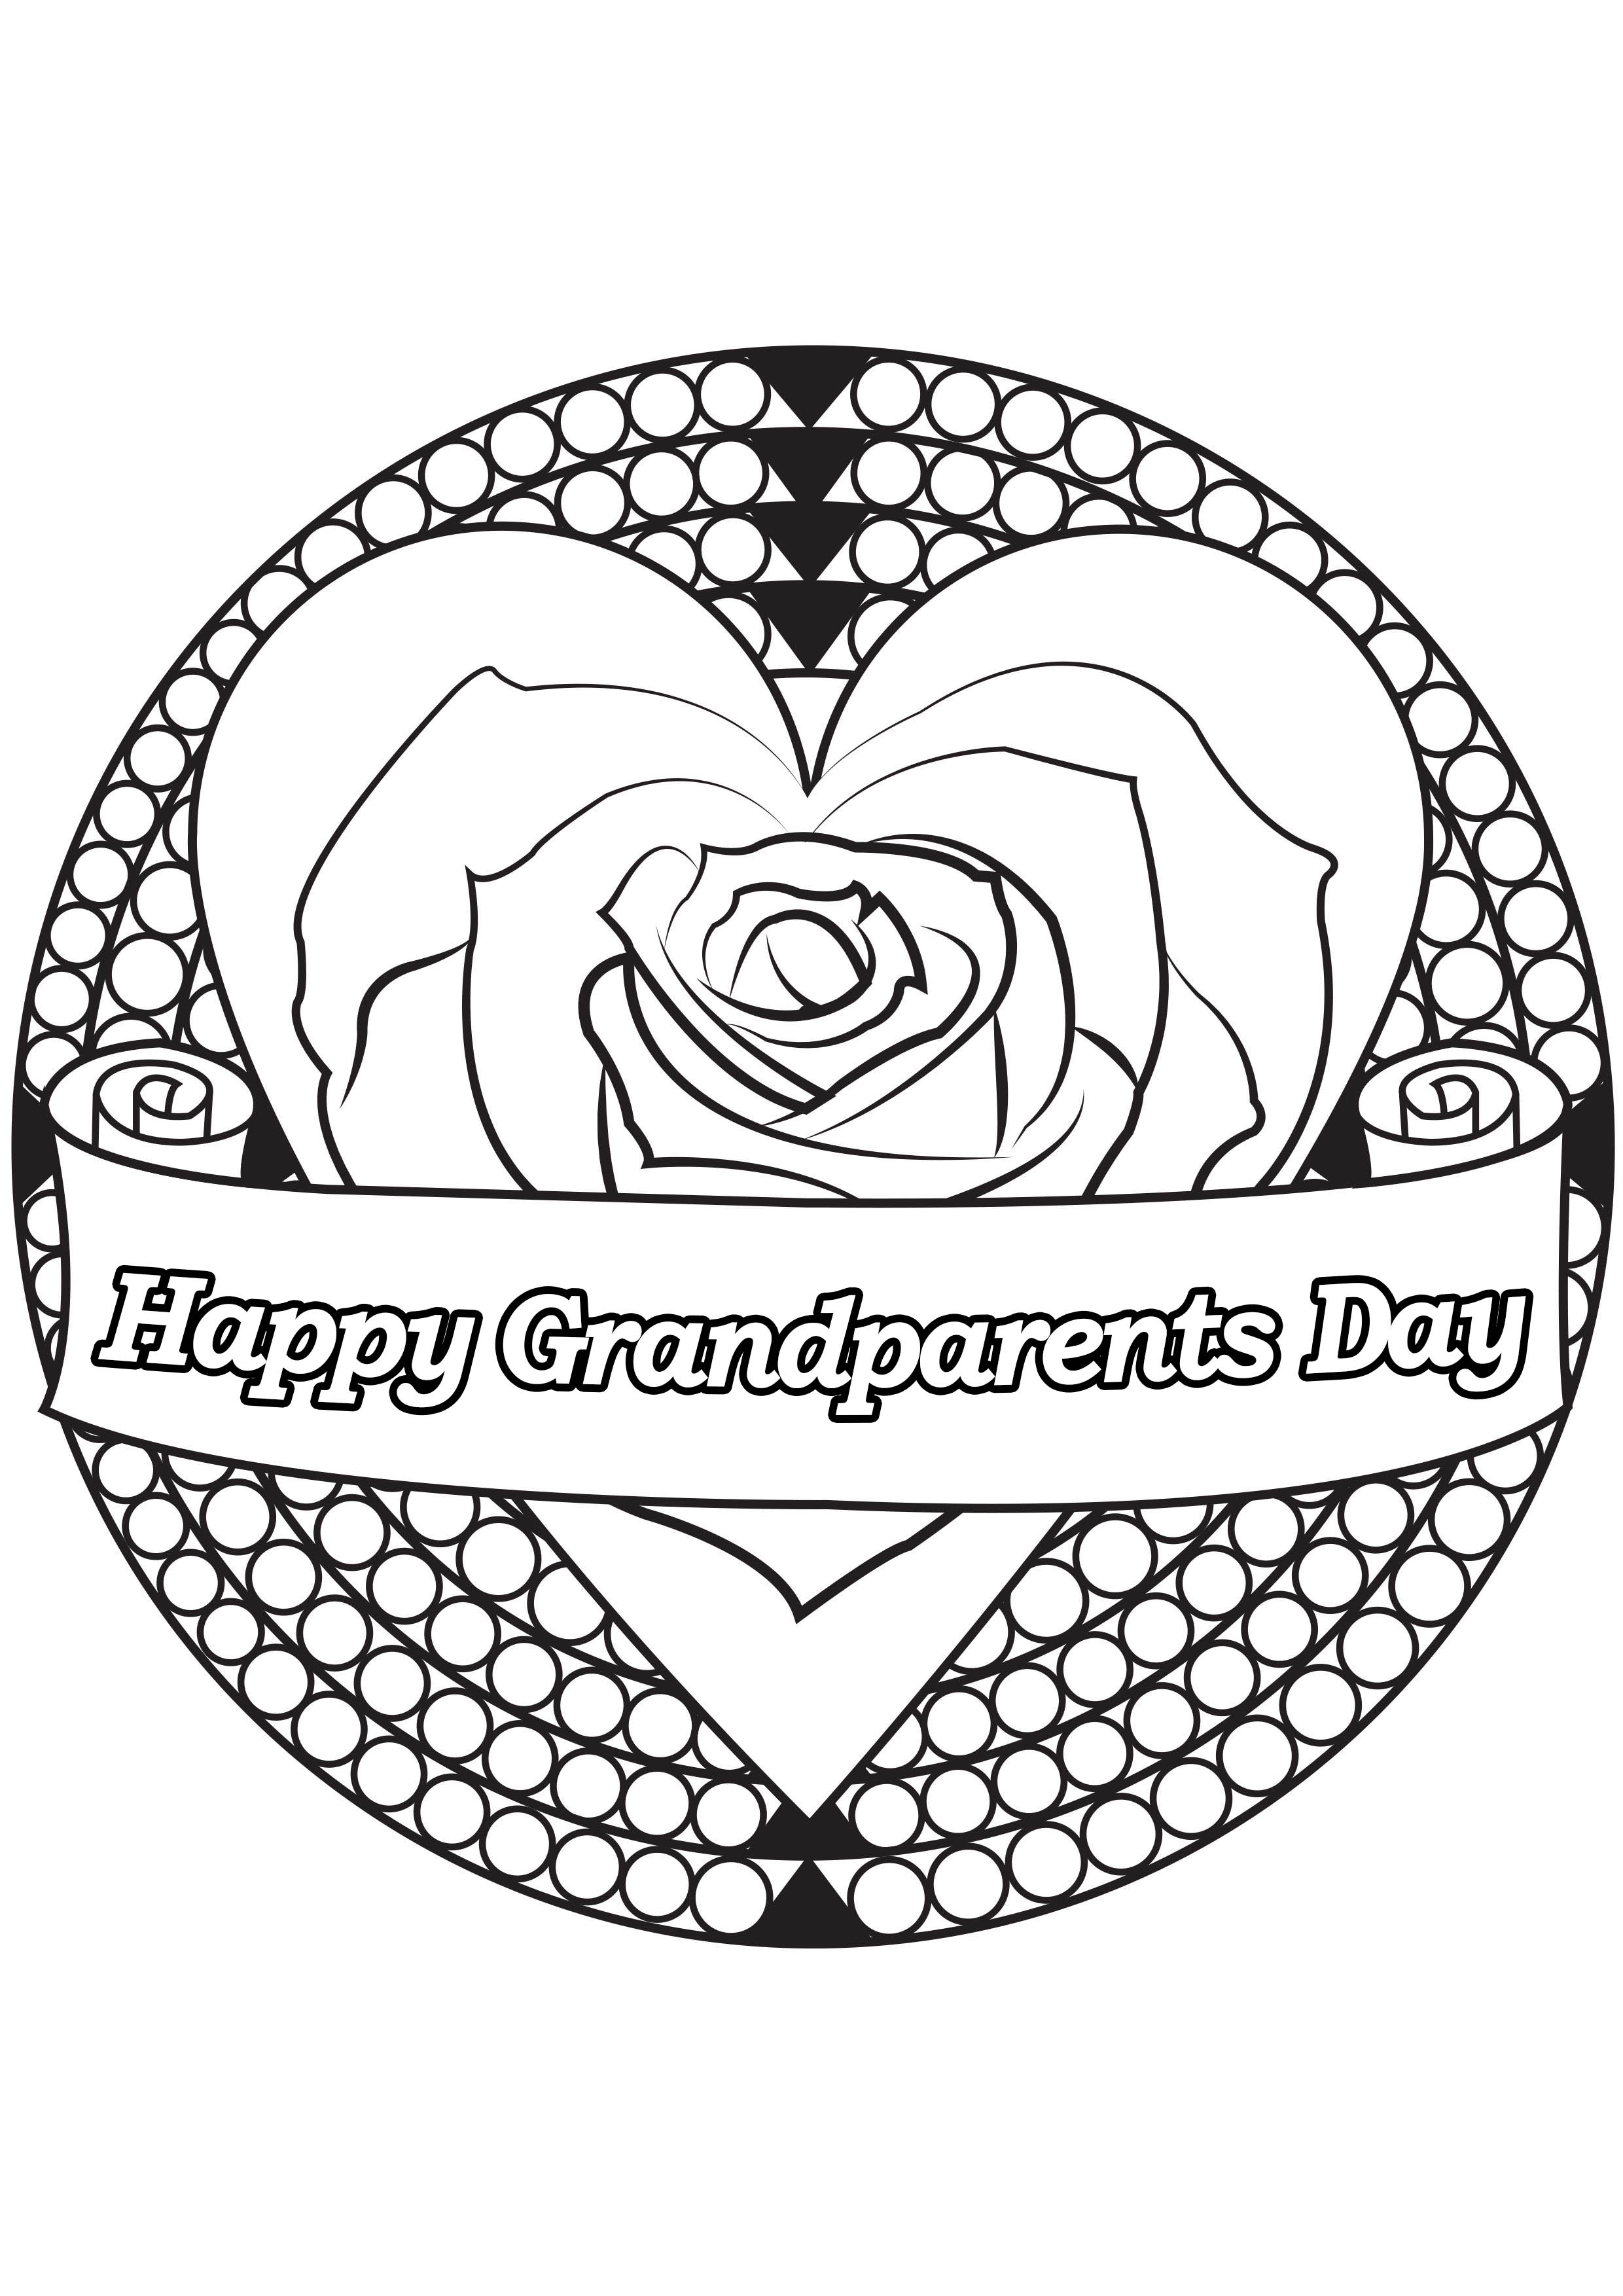 Grandparents day 3 - Grandparents Day - Coloring pages for adults